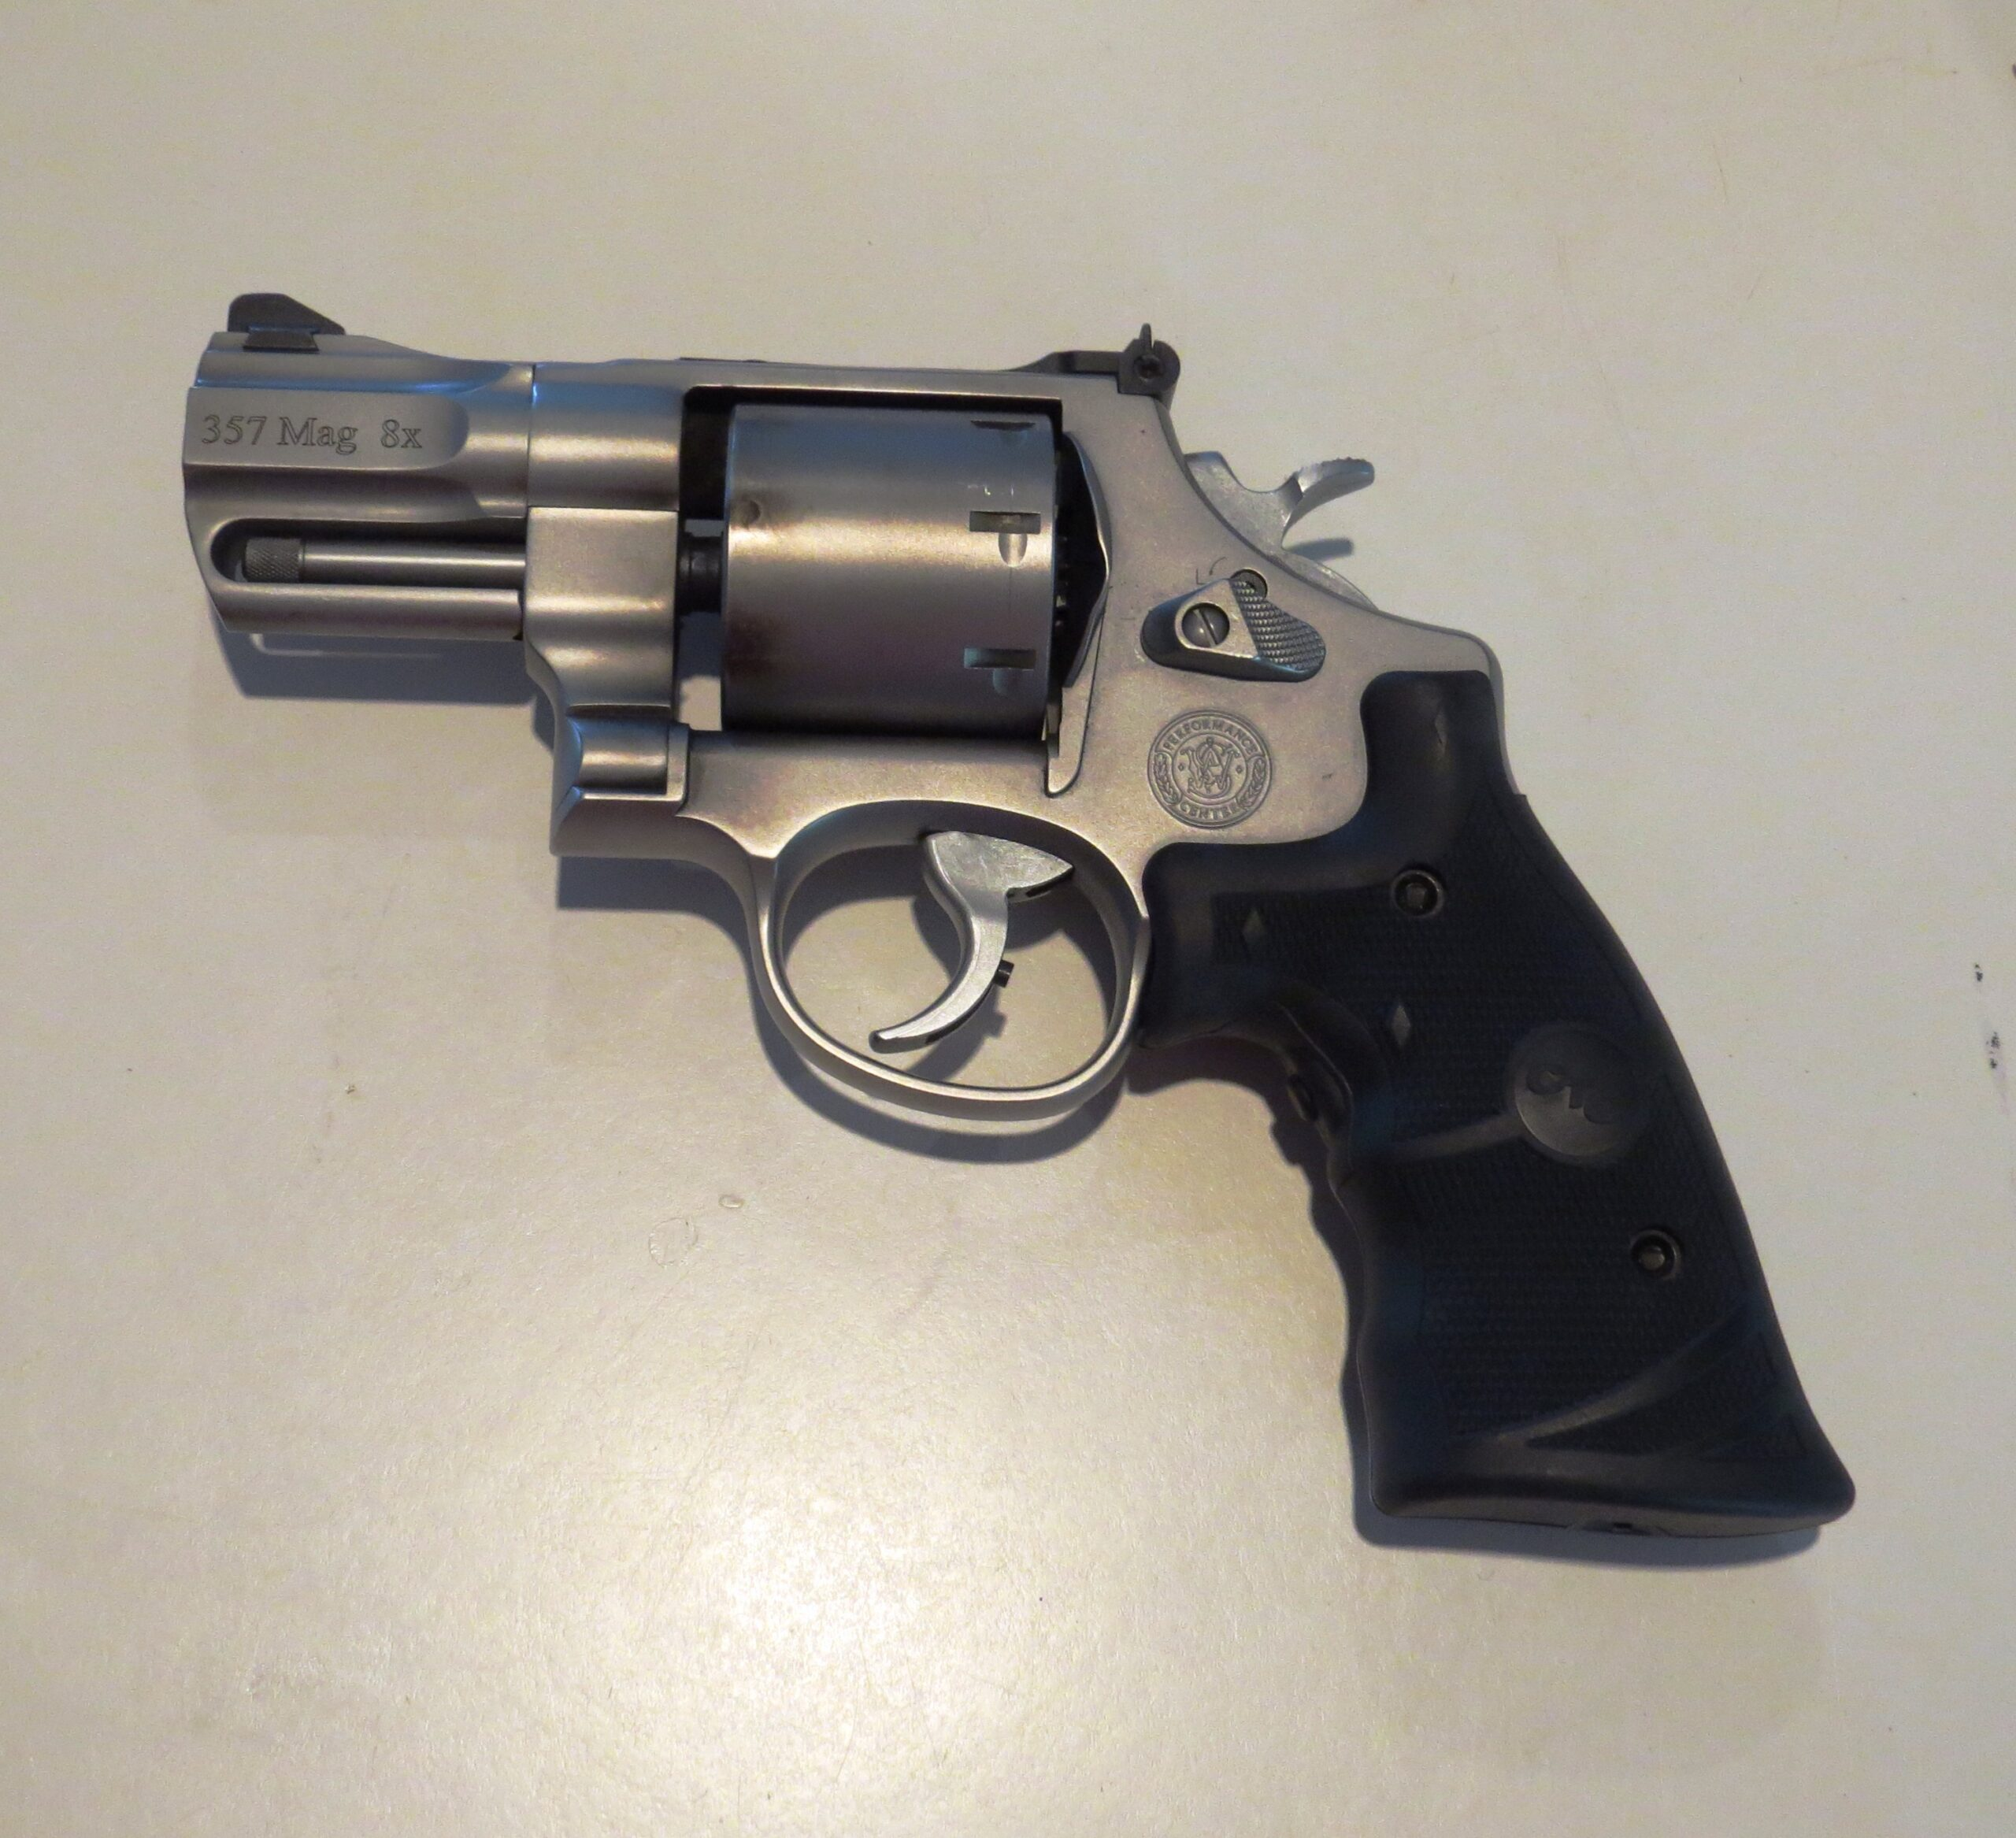 Concealed Carry — Smith & Wesson Model 627   The Fifth Field